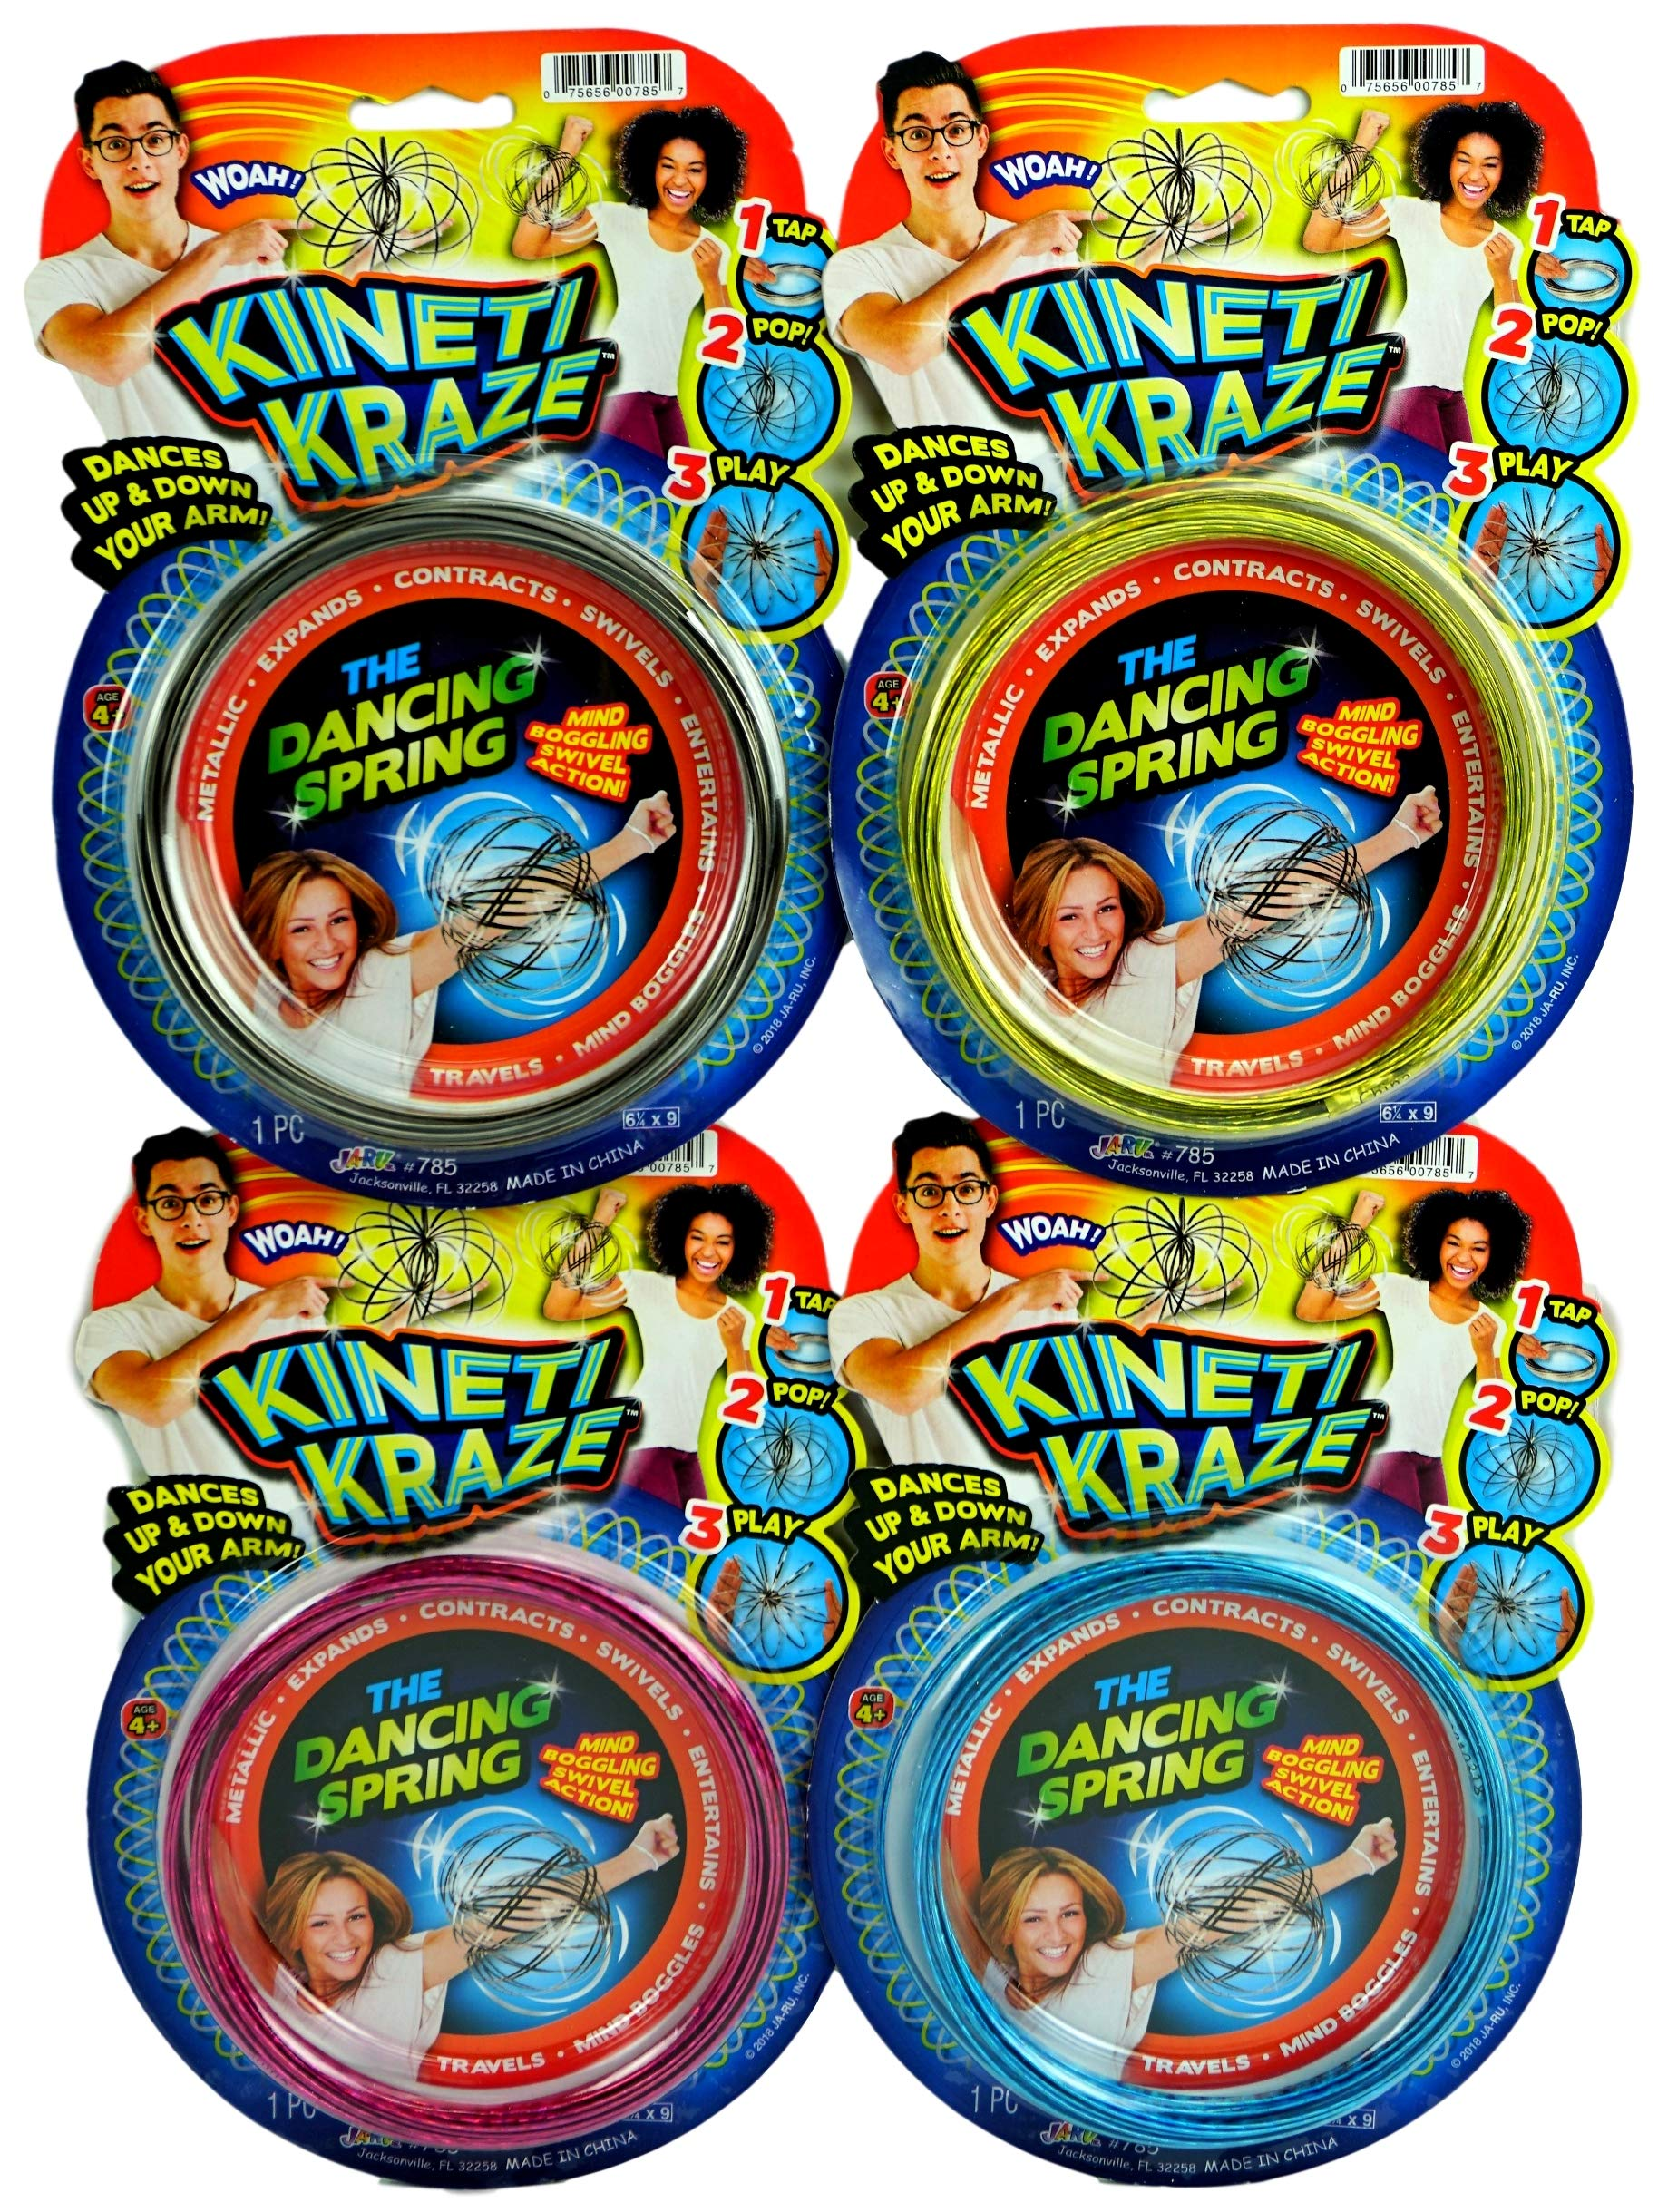 JA-RU Flow Kinetic Ring (Pack of 12) ToroFun Game or Arm Slinky| Item #785-12 by JA-RU (Image #6)